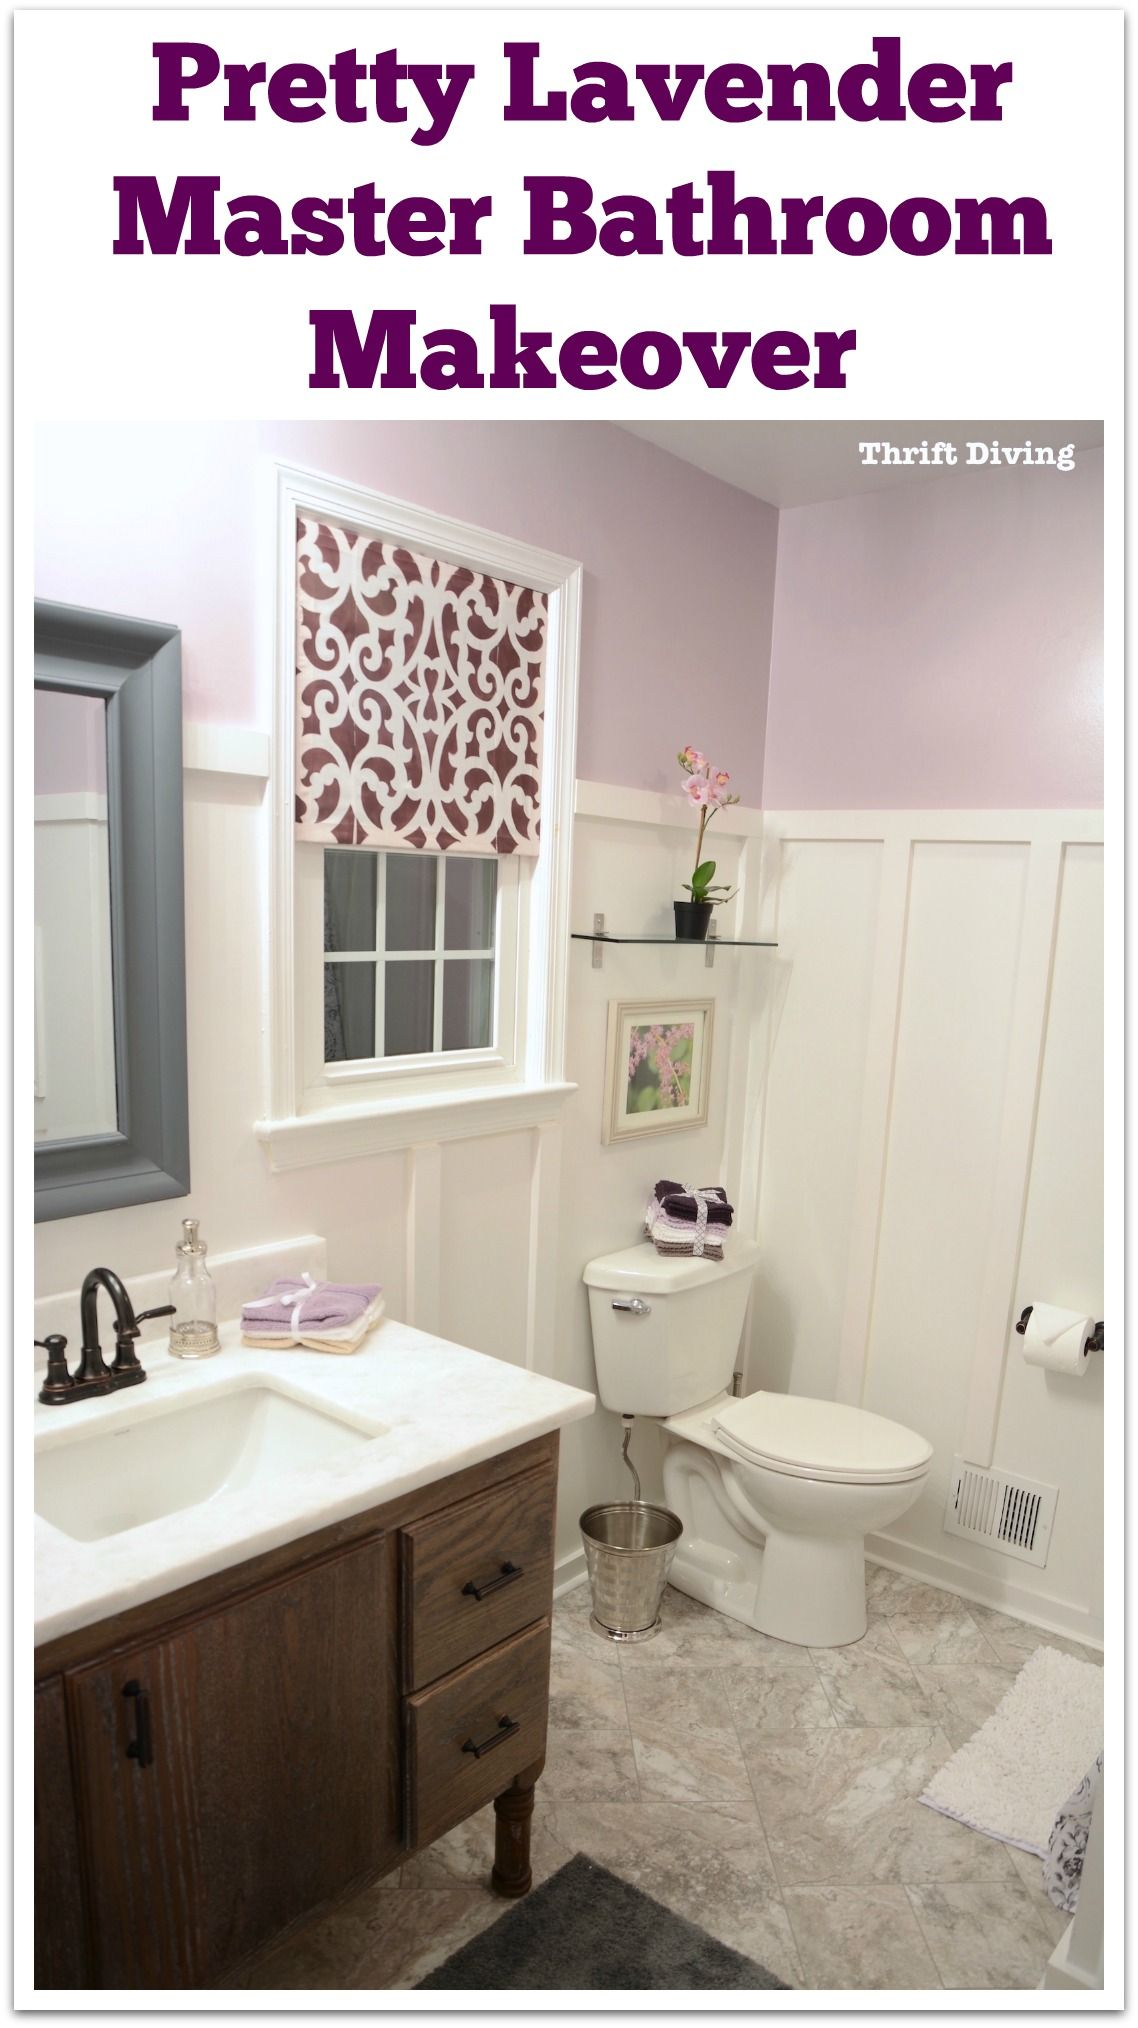 "Pretty lavender master bathroom makeover - Includes new flooring, 60"" DIY bathroom vanity, painted shower, new toilet, board and batten, and a DIY window privacy screen. Paint color: Behr Mulberry Stain. See lots of BEFORE and AFTER photos! 